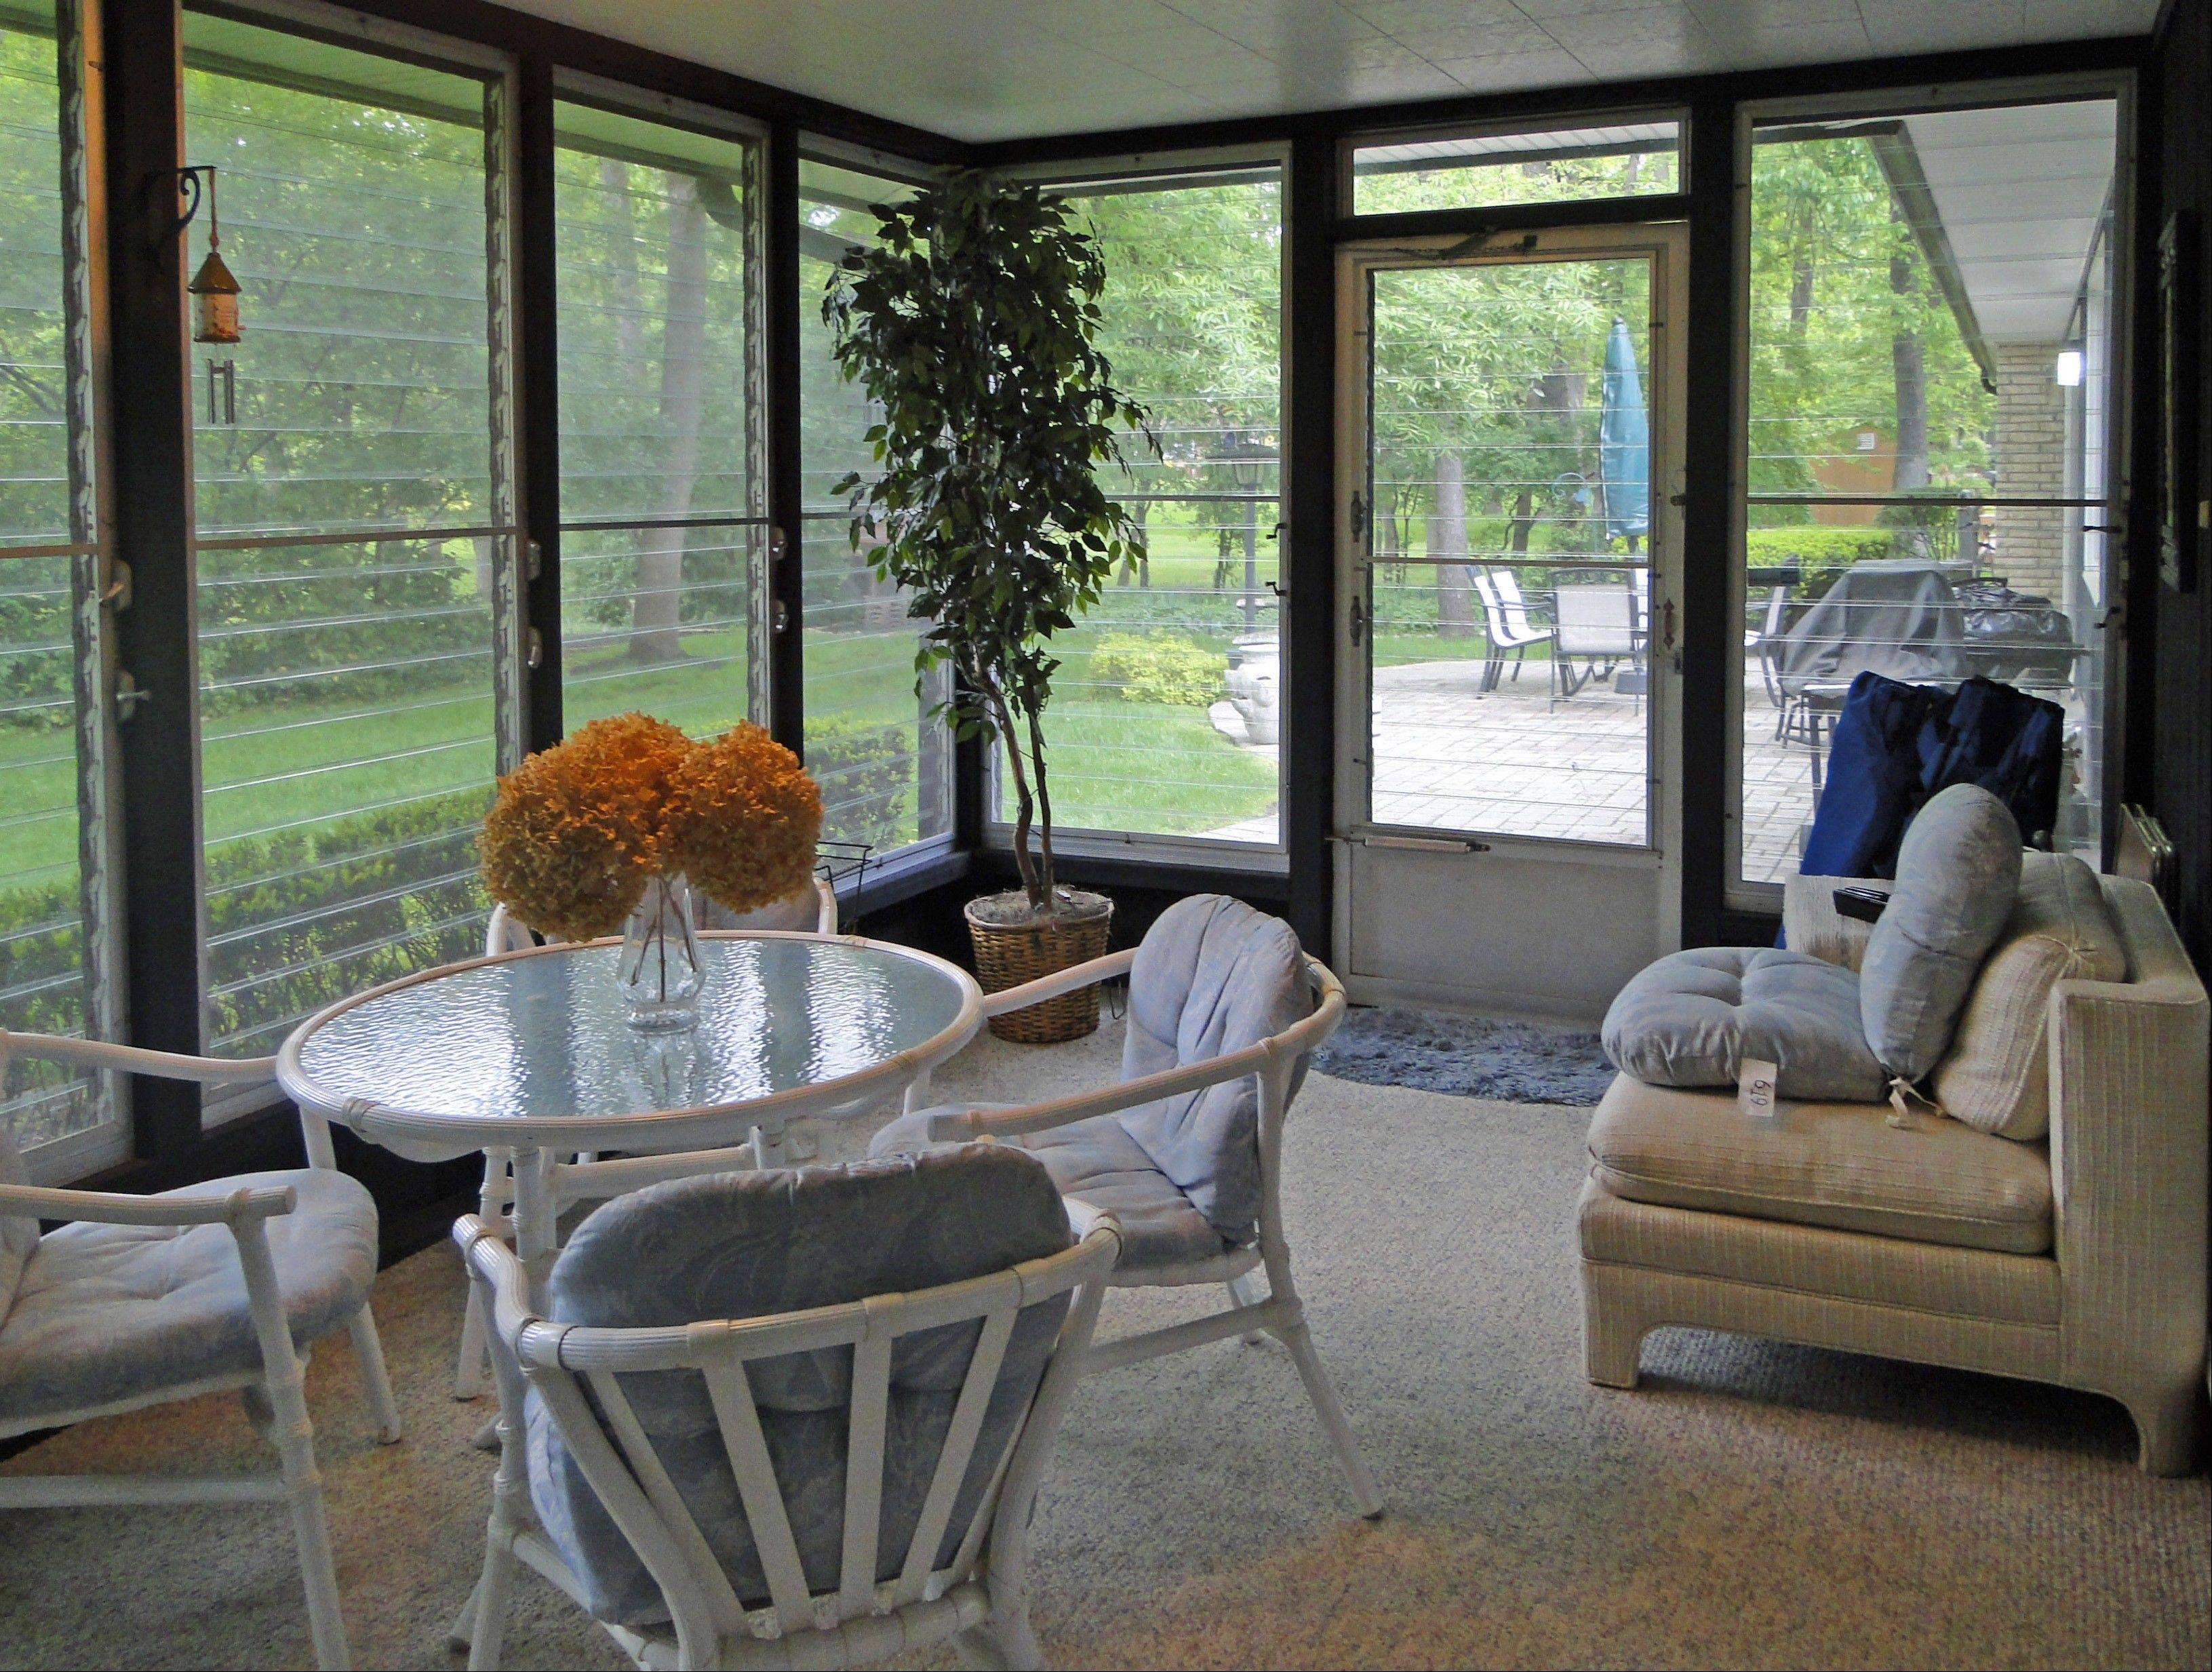 This sunroom allows owners to enjoy views of the half-acre lot.